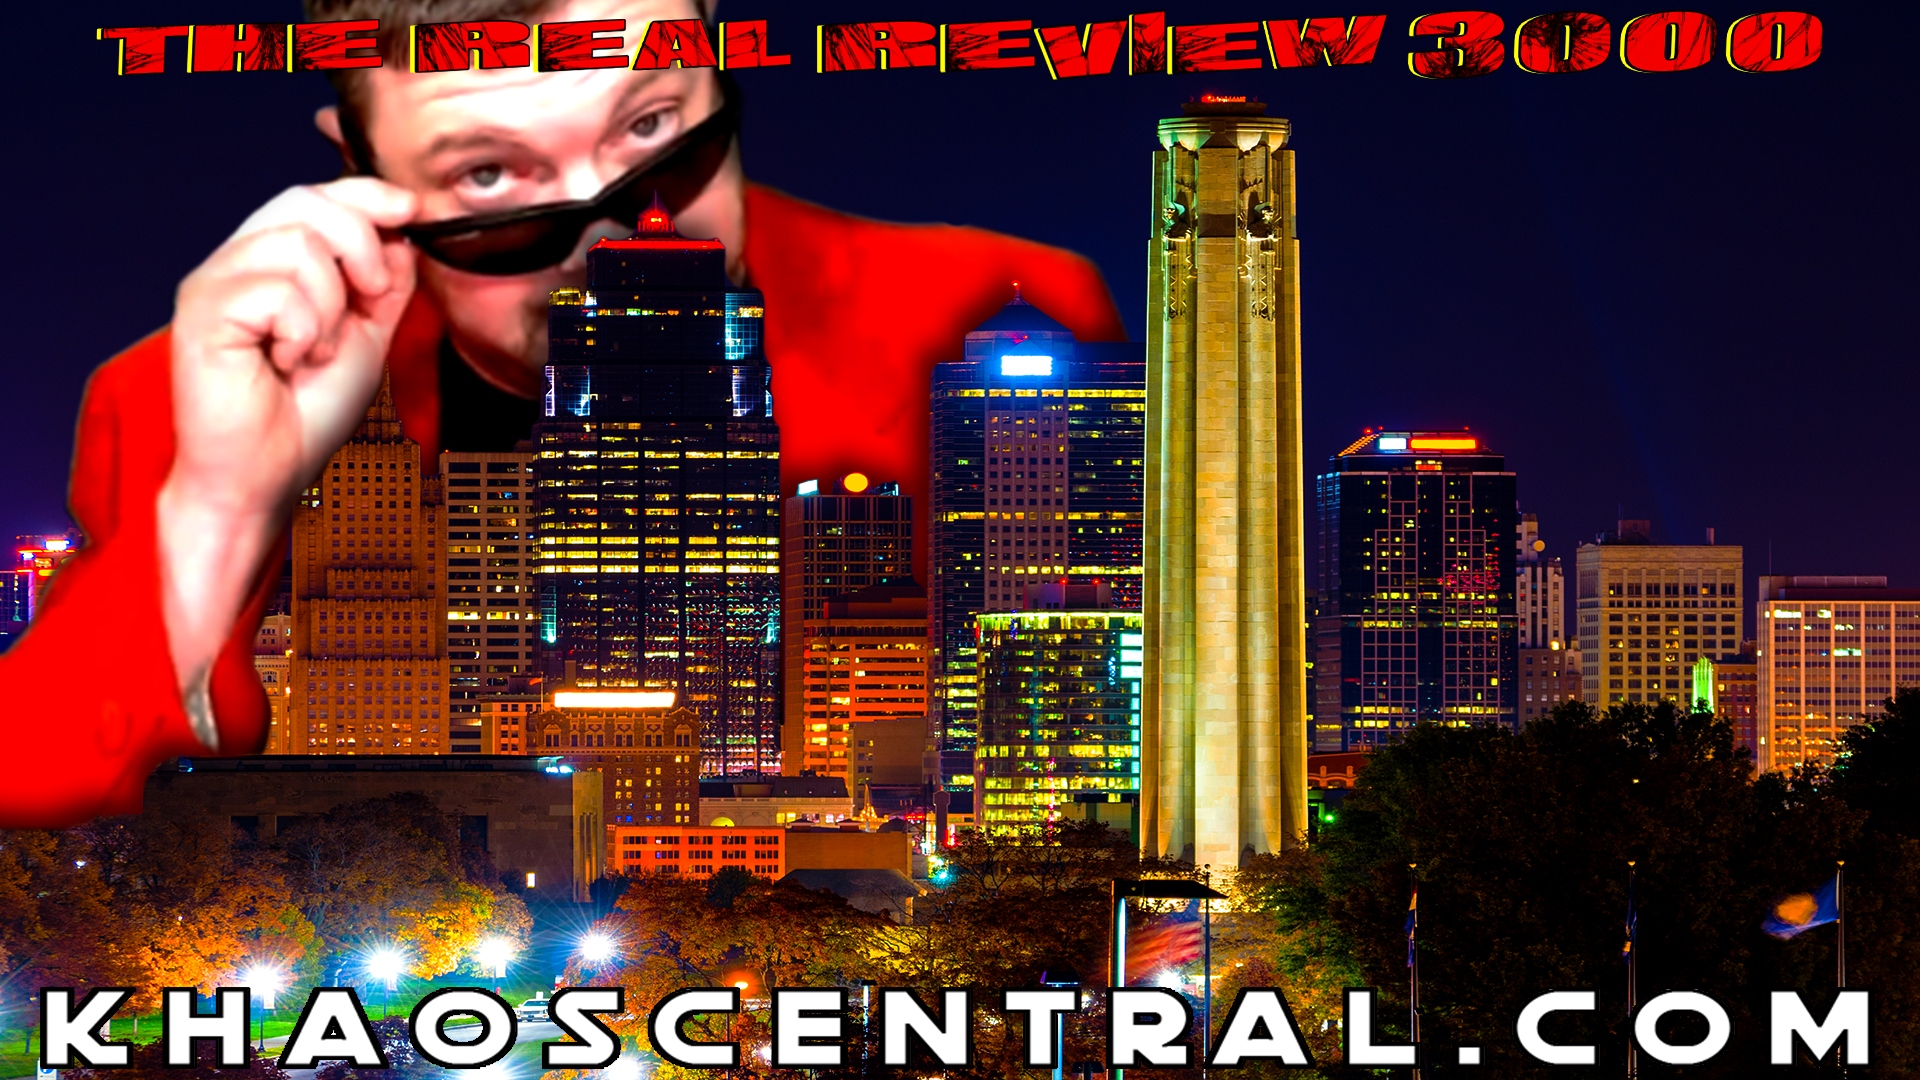 Chris Knight the Real Review 3000 Billboard